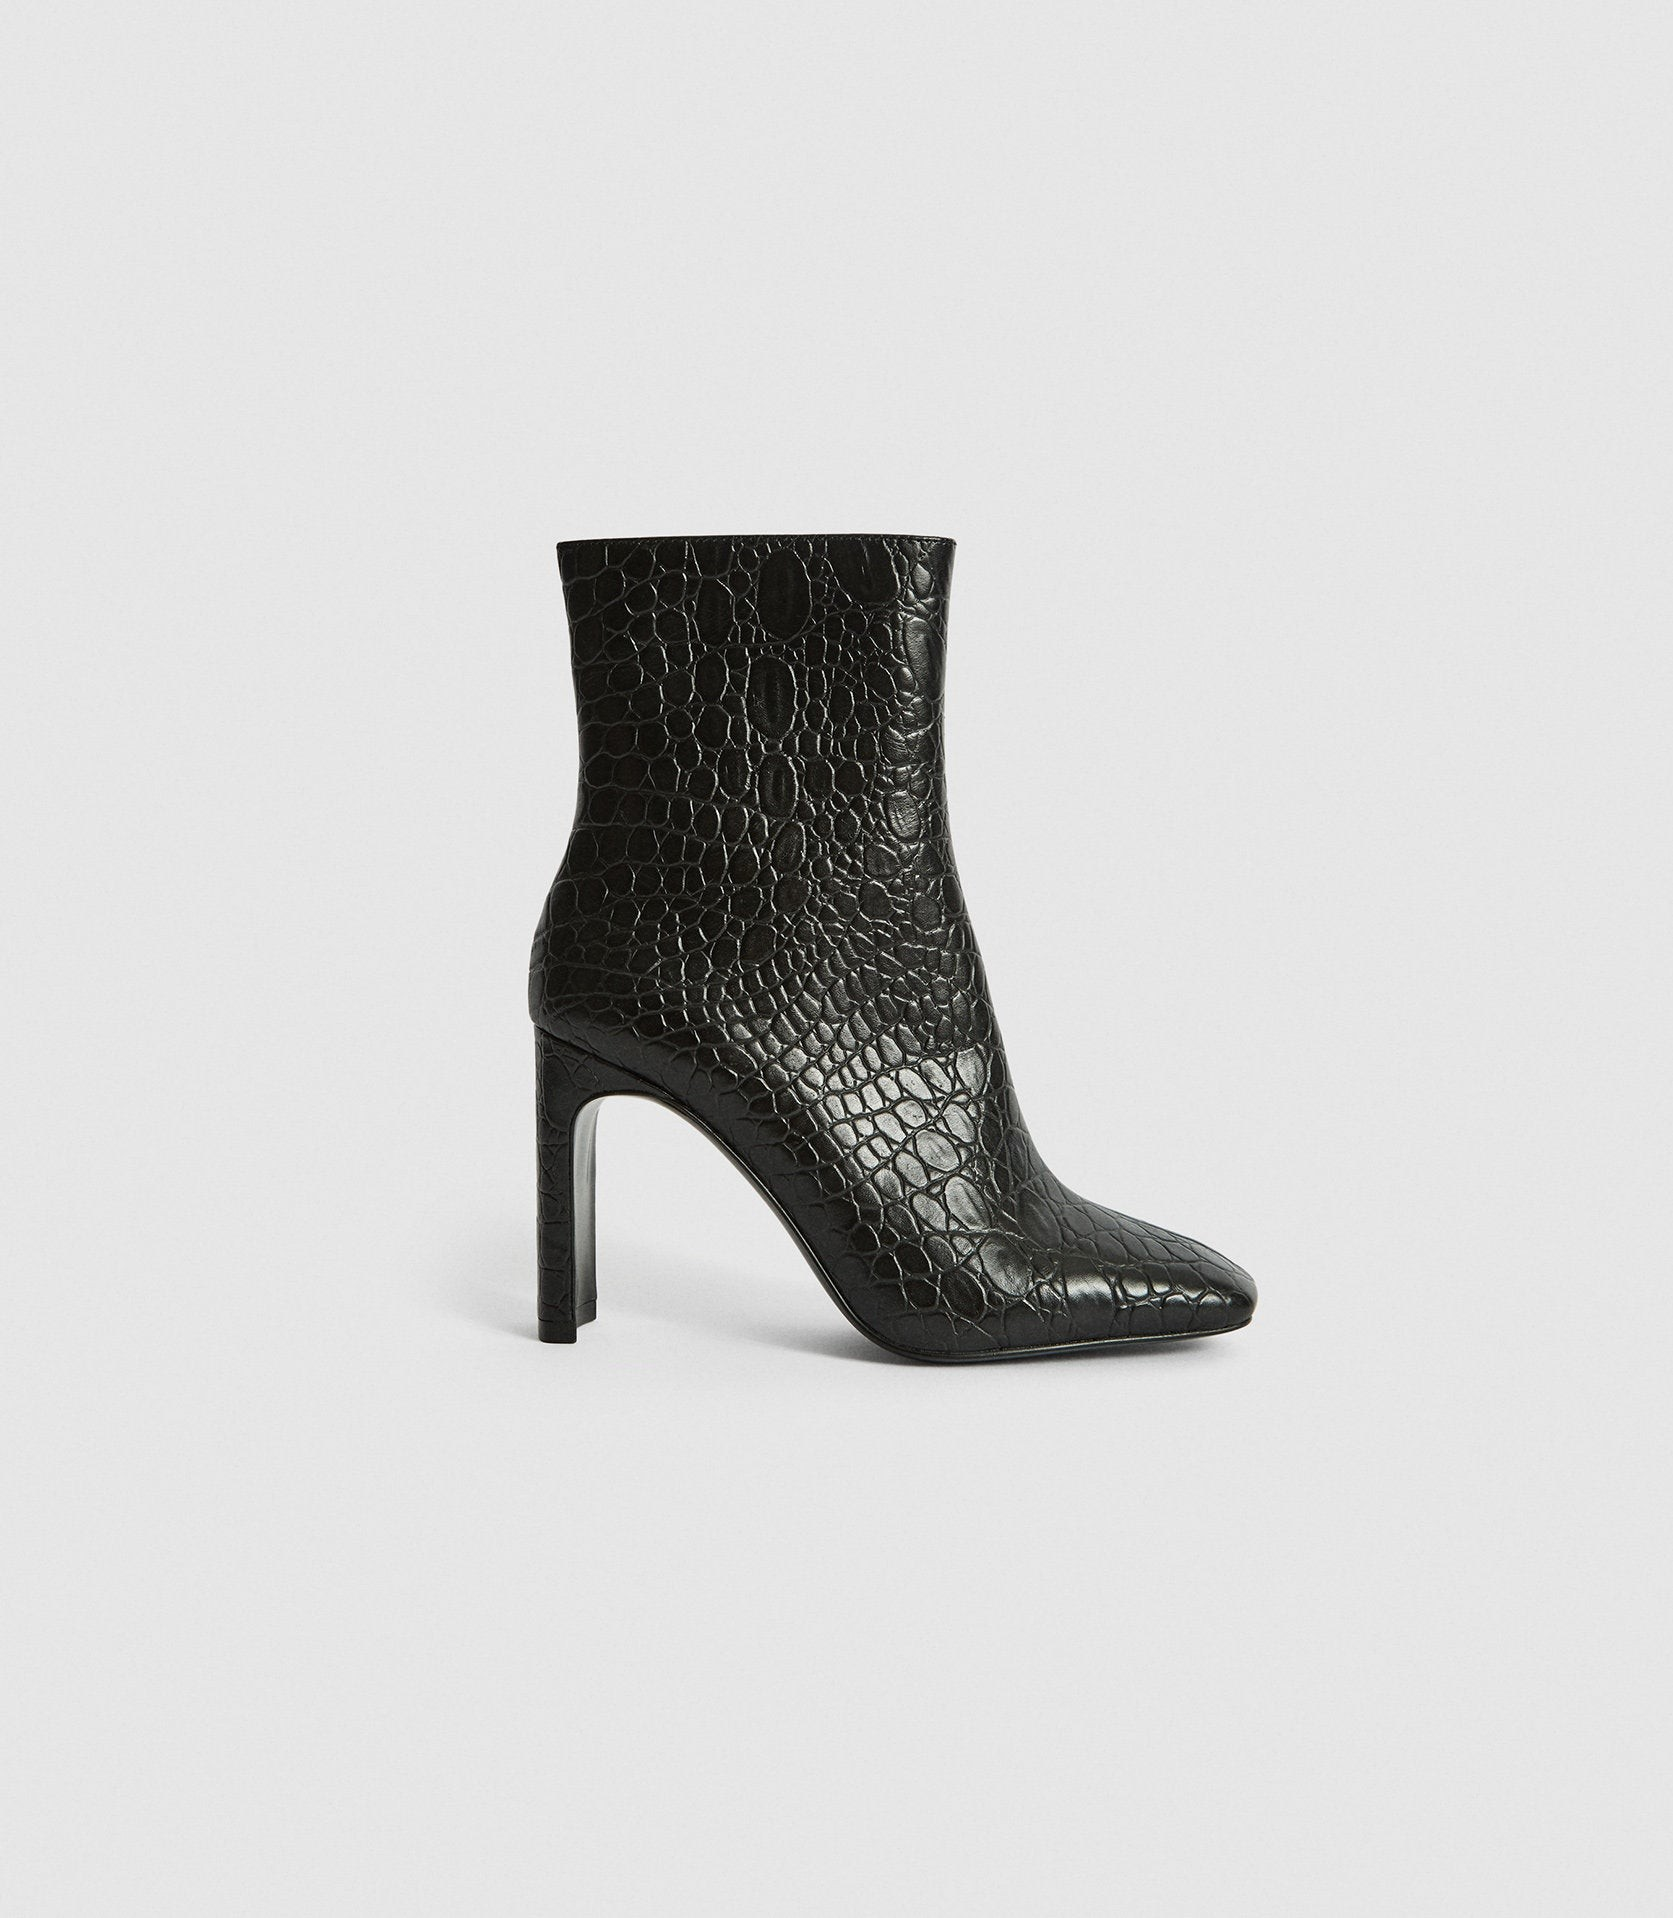 Reiss Vogue - Leather Croc Embossed Black, Womens, Size 3 Ankle Boot